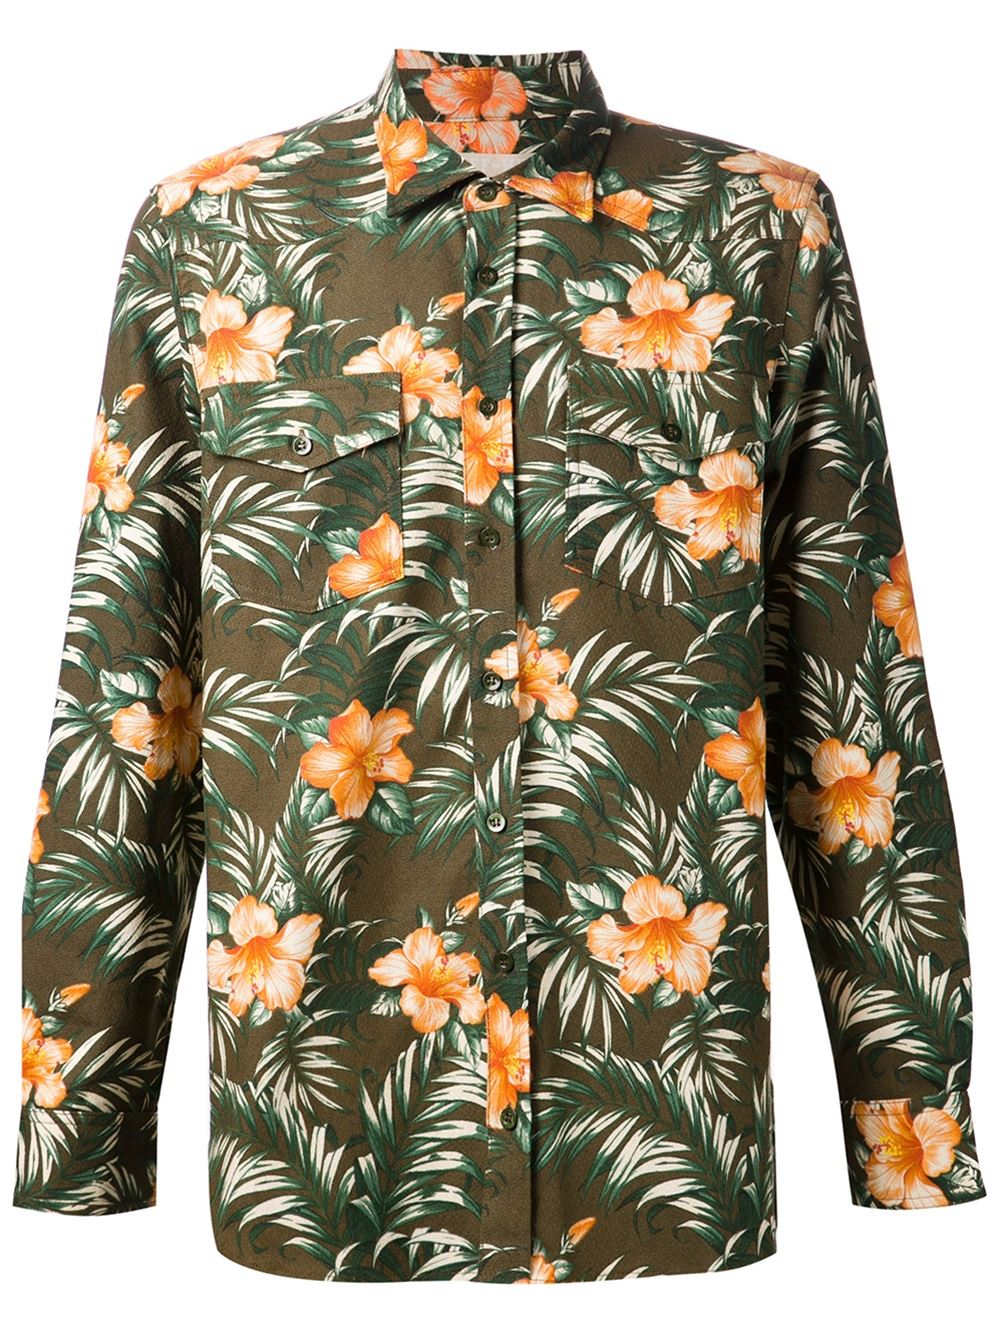 off-white-floral-shirt-